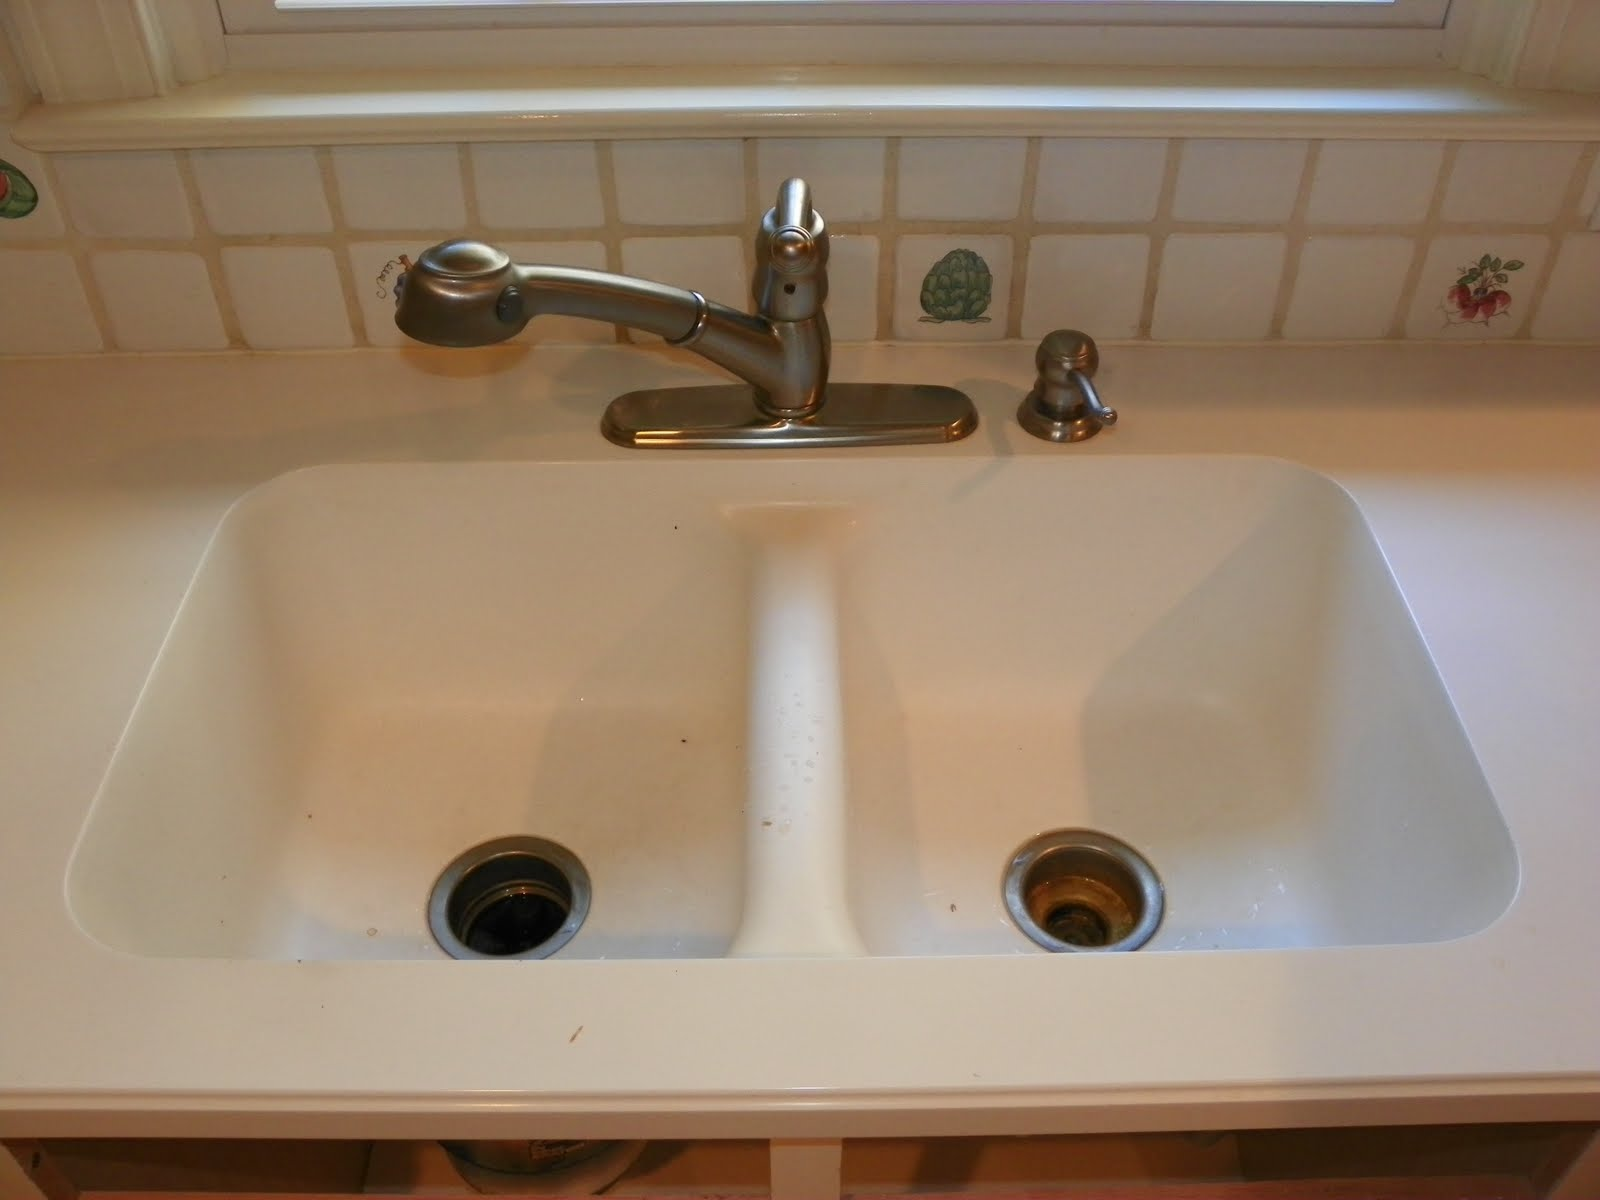 Here We Have A Wilsonart Integral Solid Surface Sink That The Homeowner Would Like To Replace With Stainless Steel Drop In